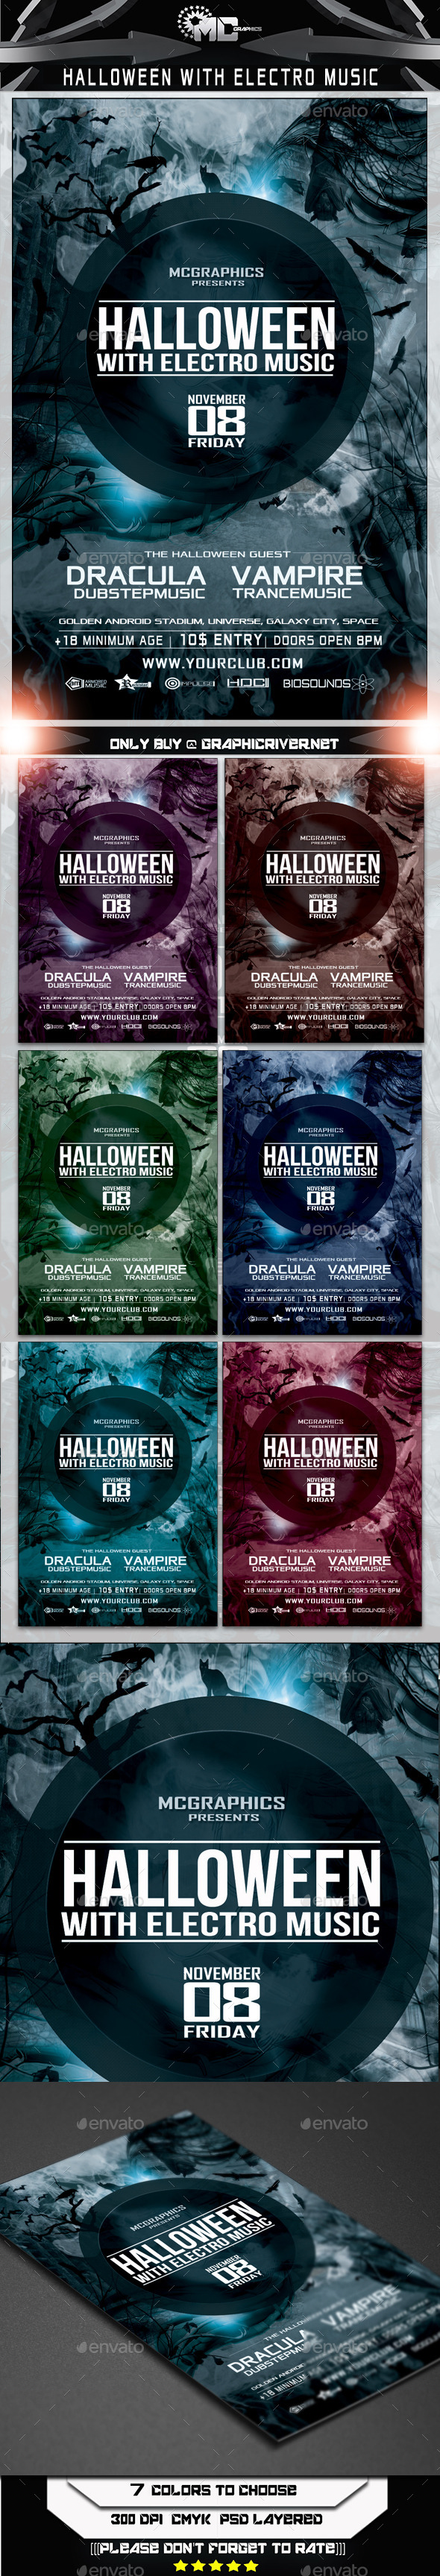 Halloween With Electro Music Flyer Template